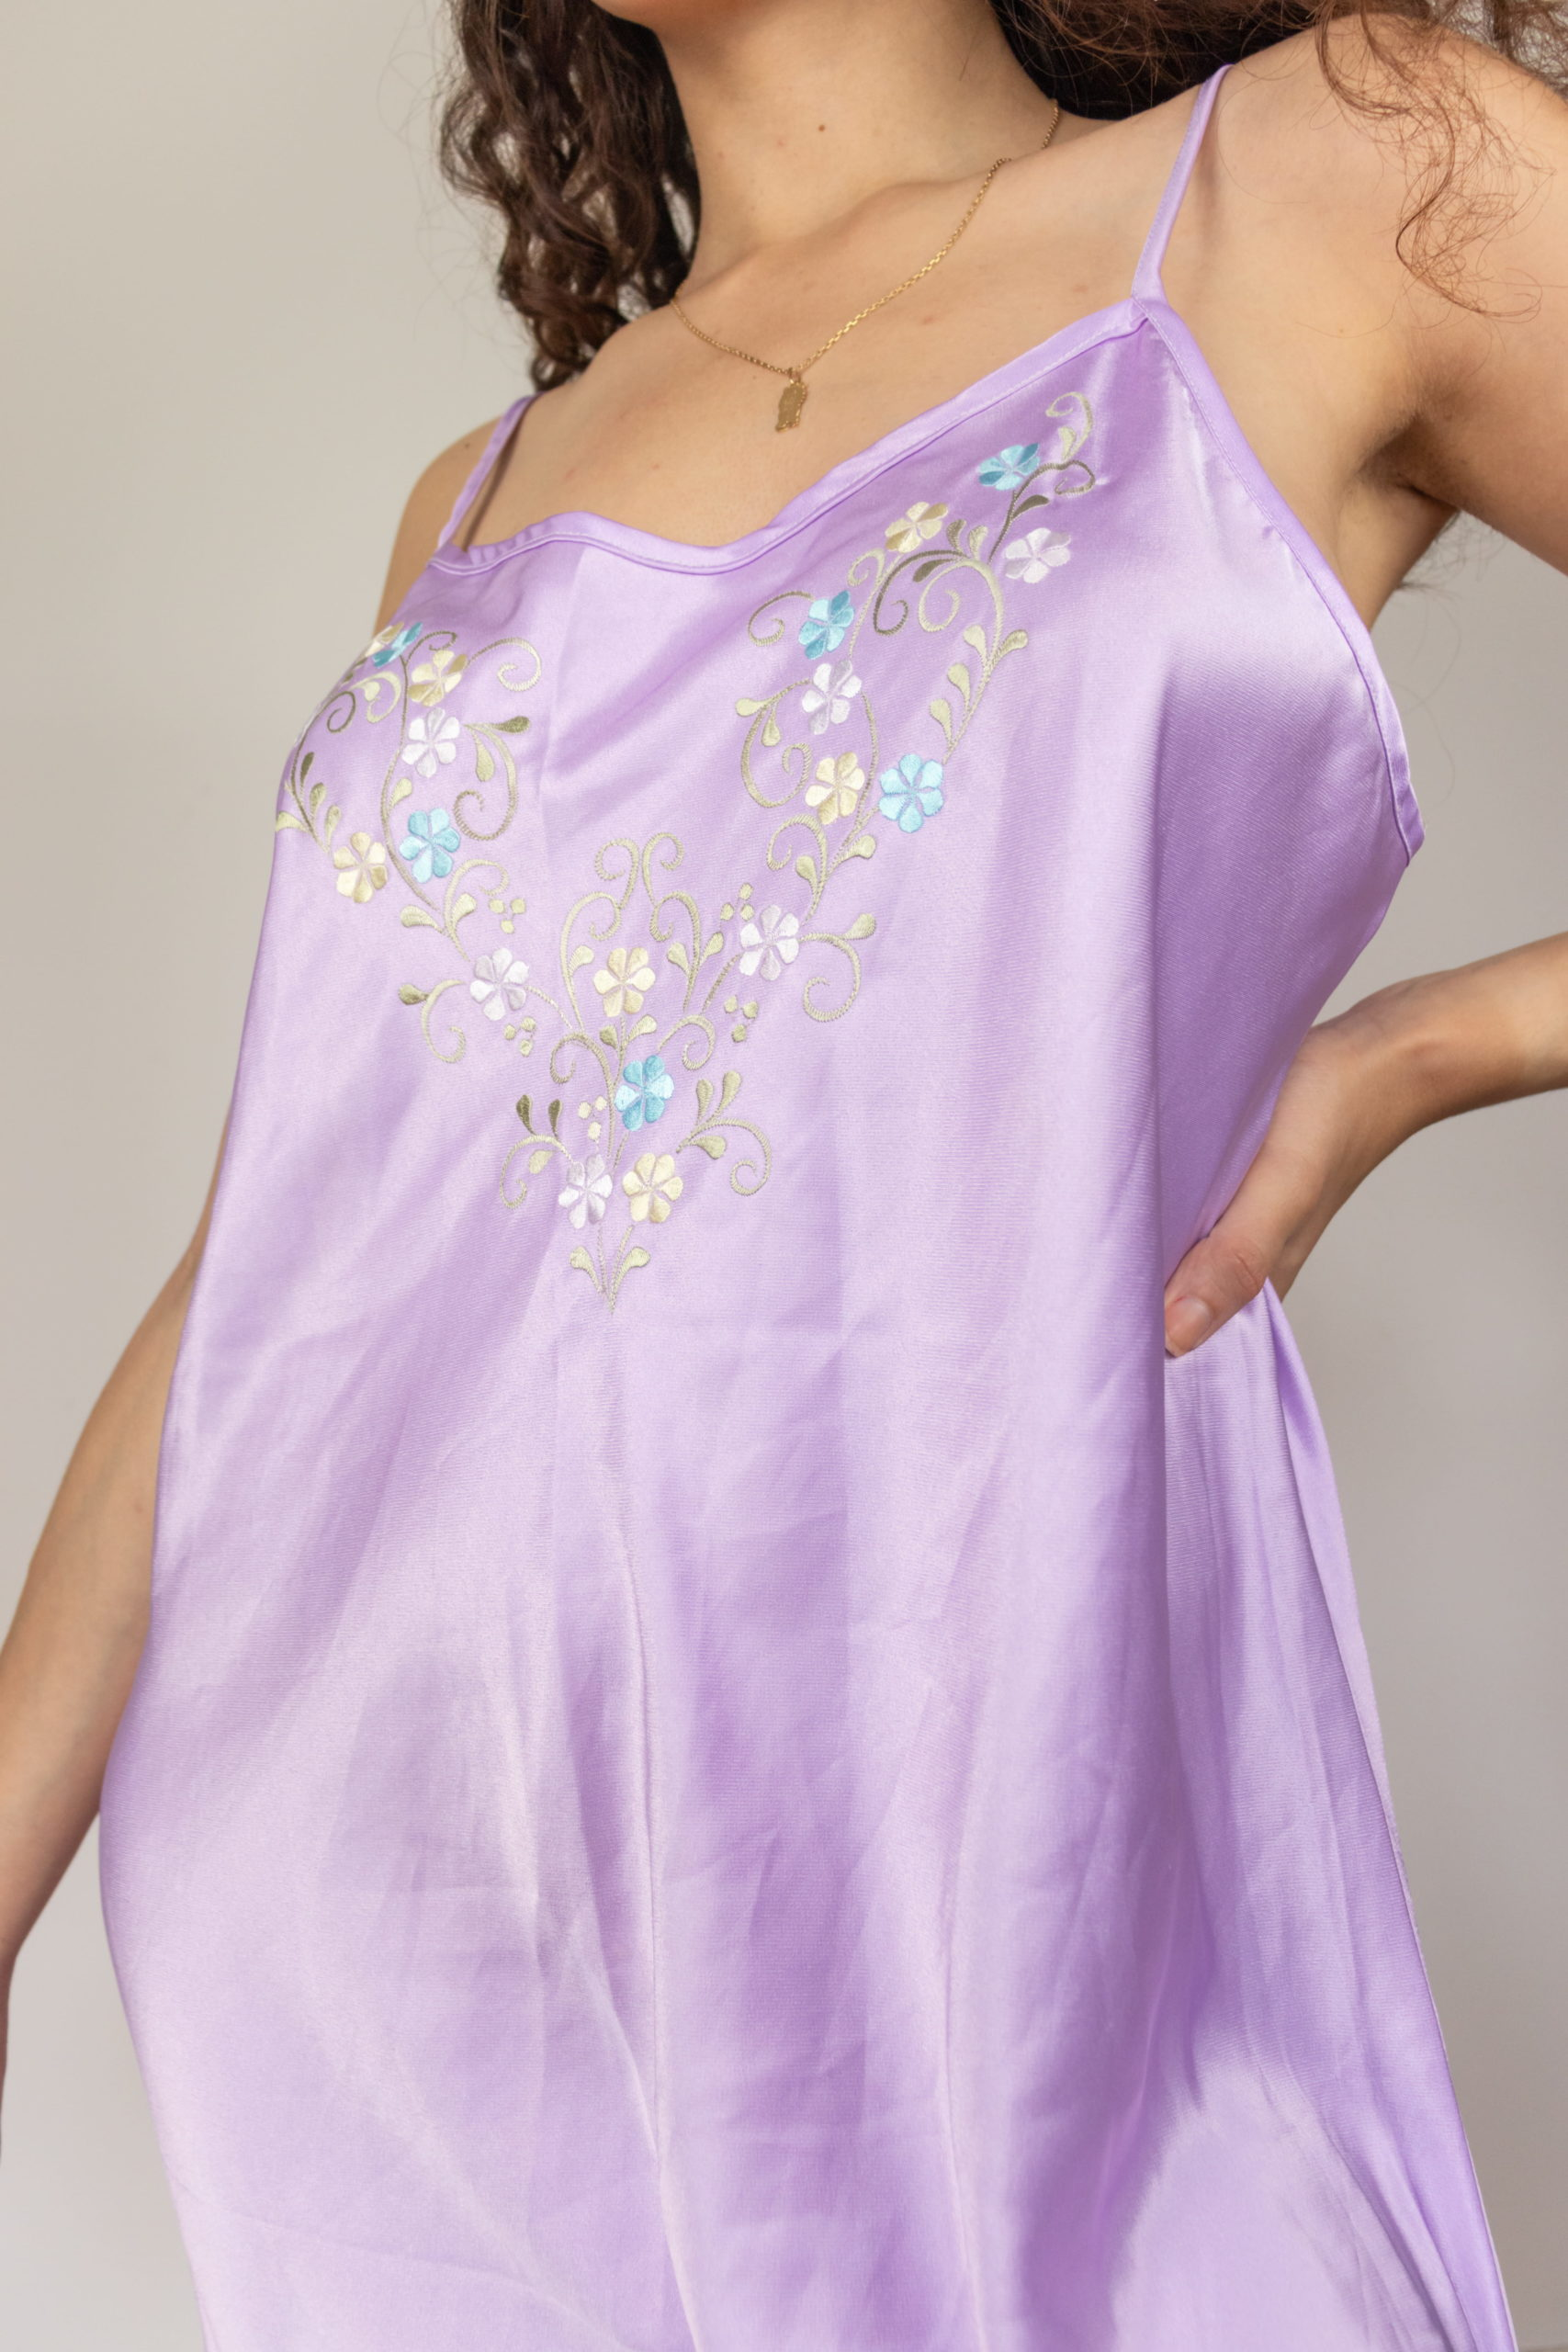 robe nuisette satinée lilas broderie fleurie (5)